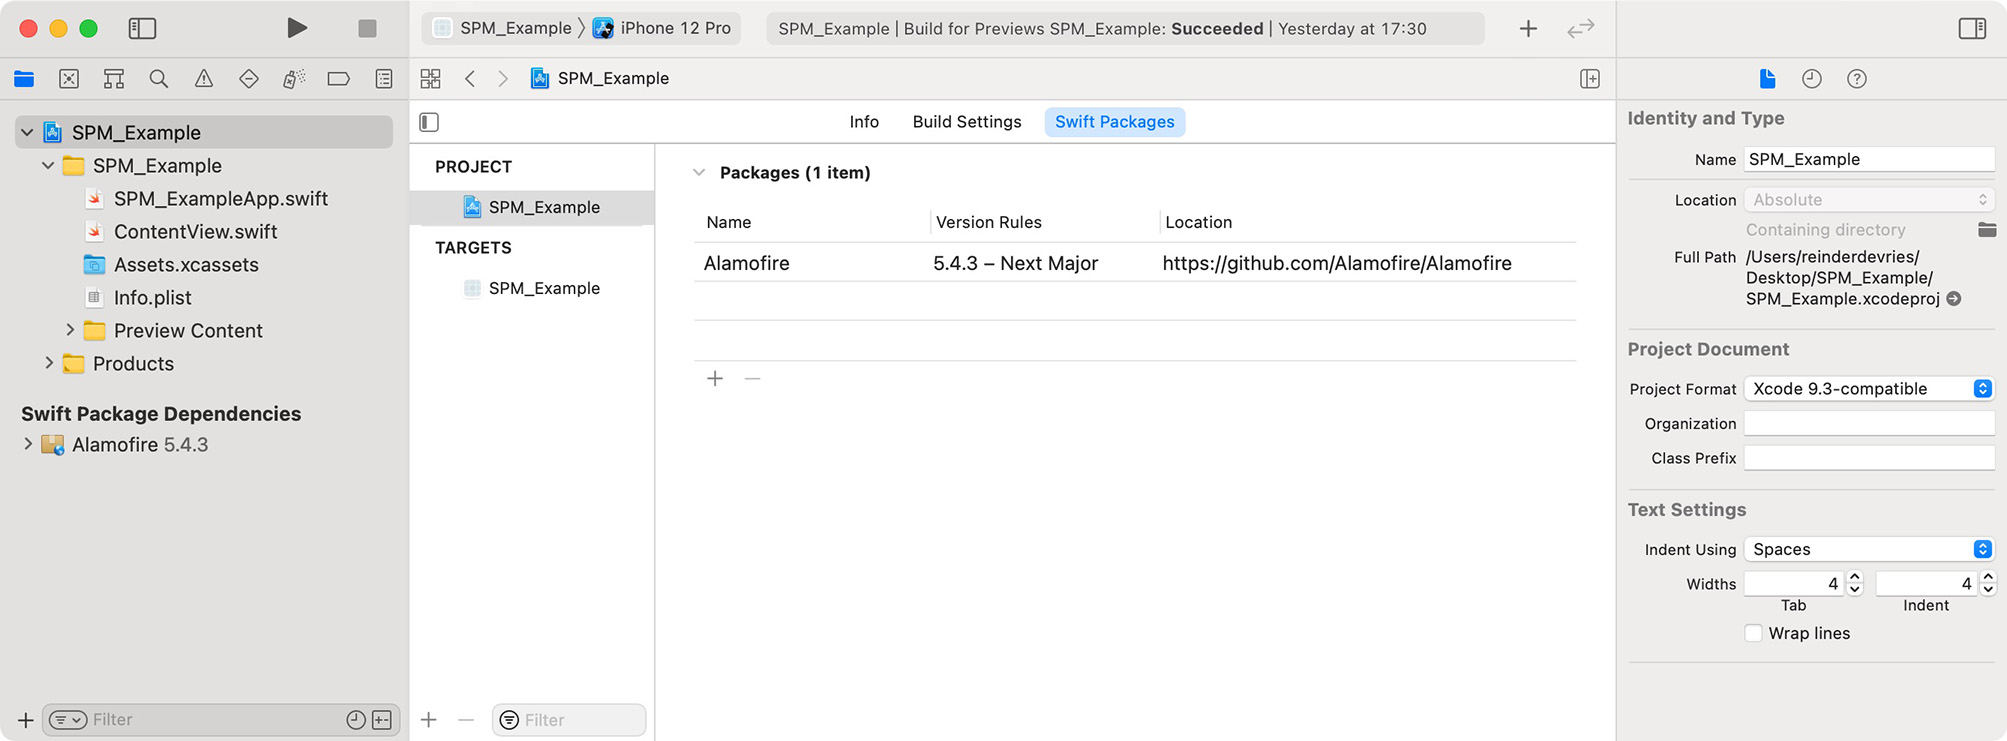 Swift Packages overview in Xcode